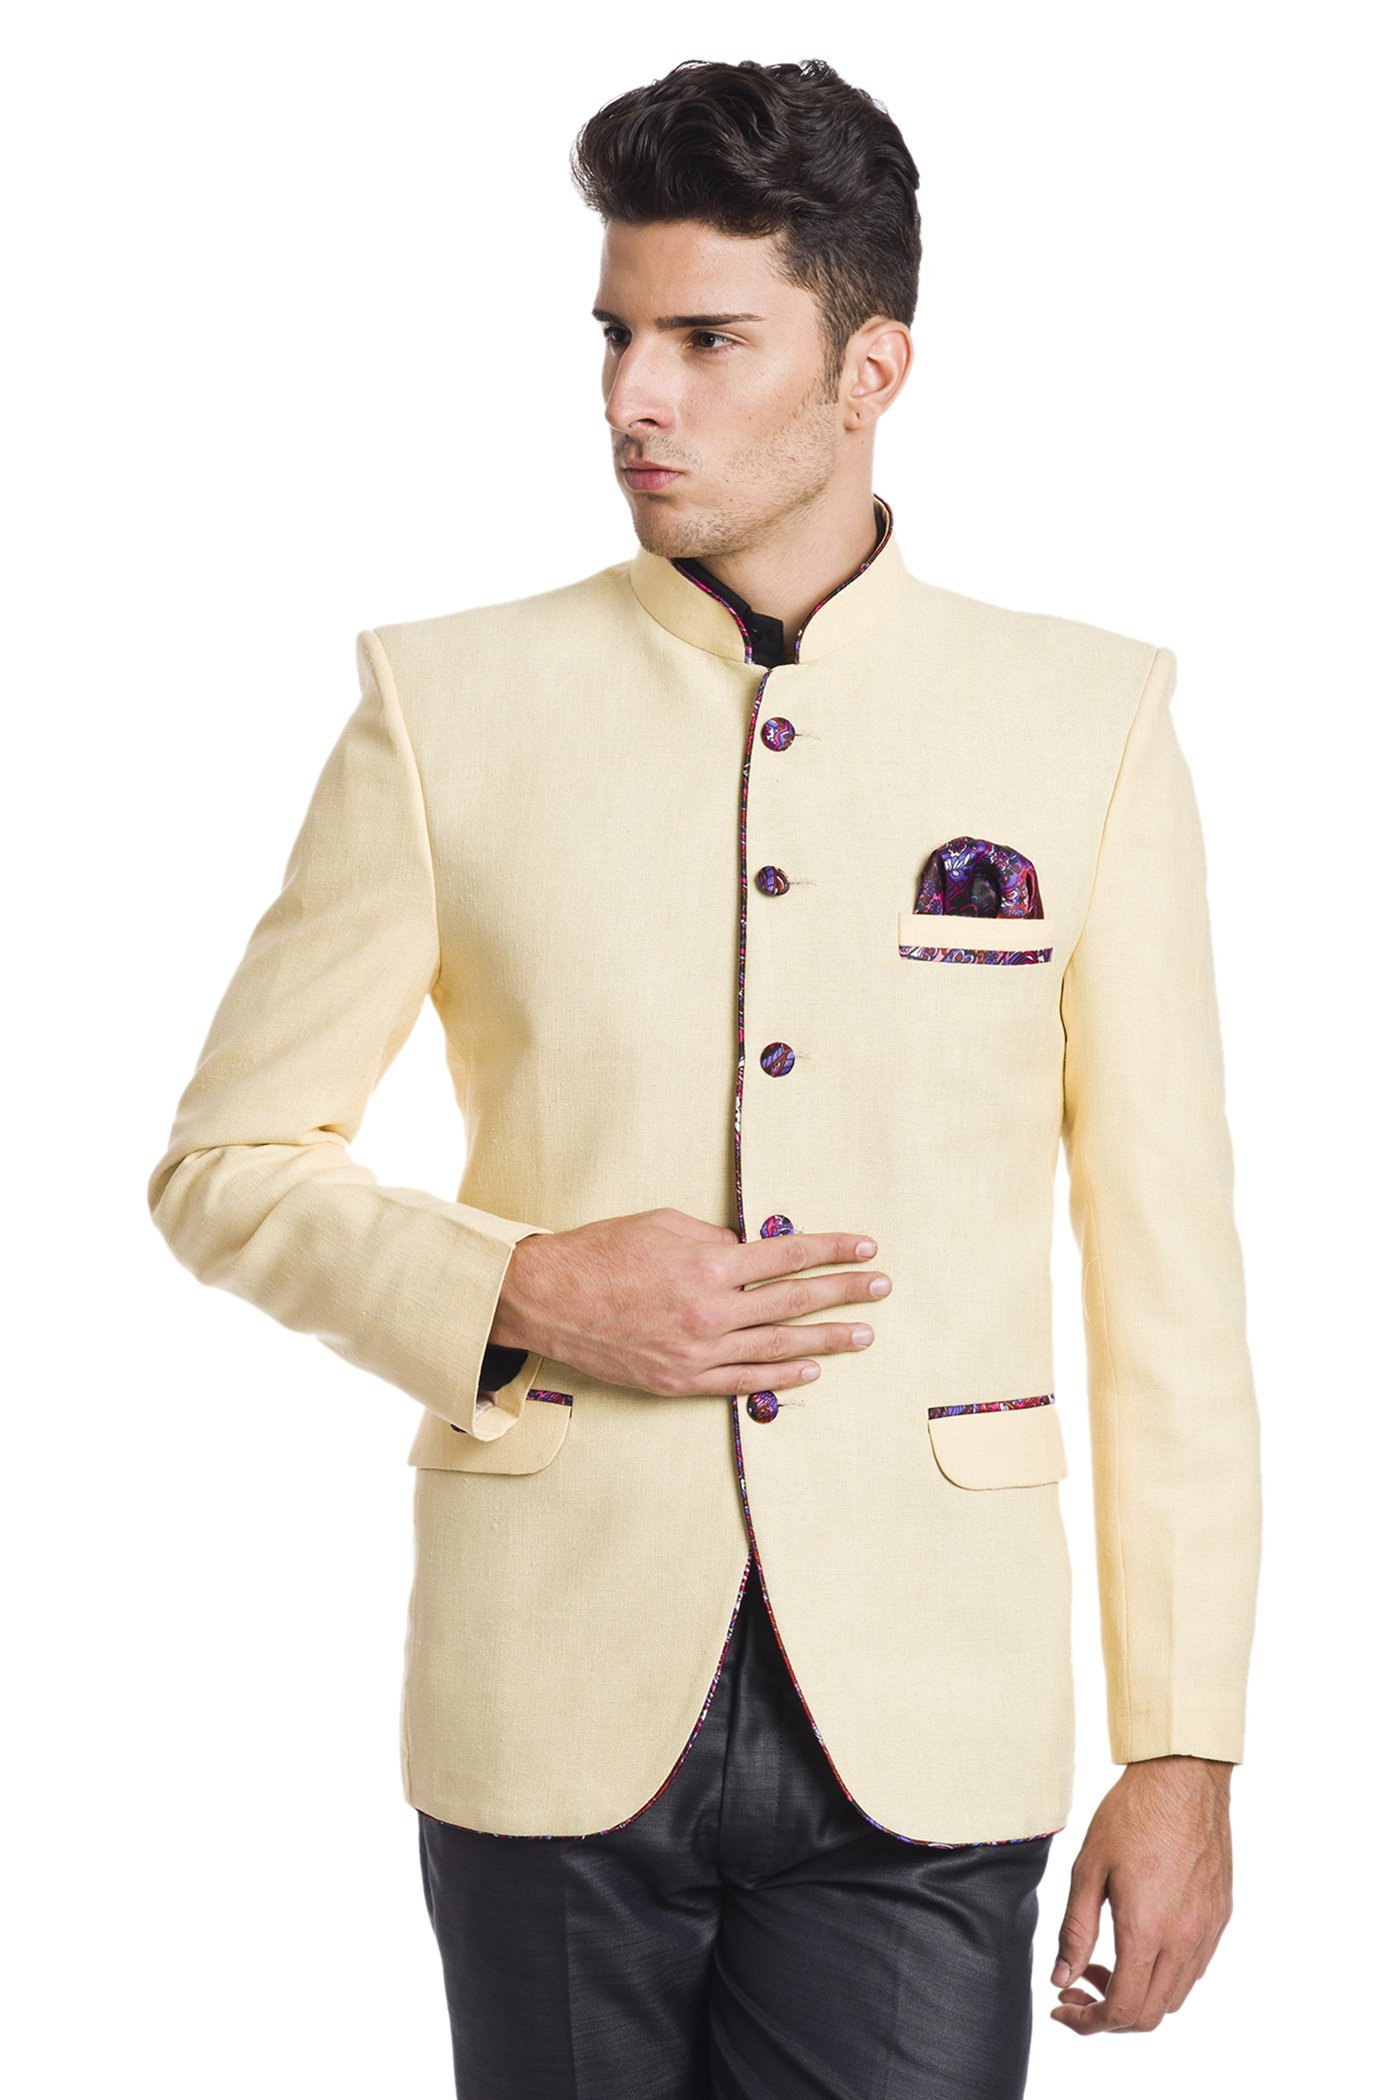 WINTAGE Men's Linen Blend Wedding Nehru Mandarin Blazer - Cream,40 Short